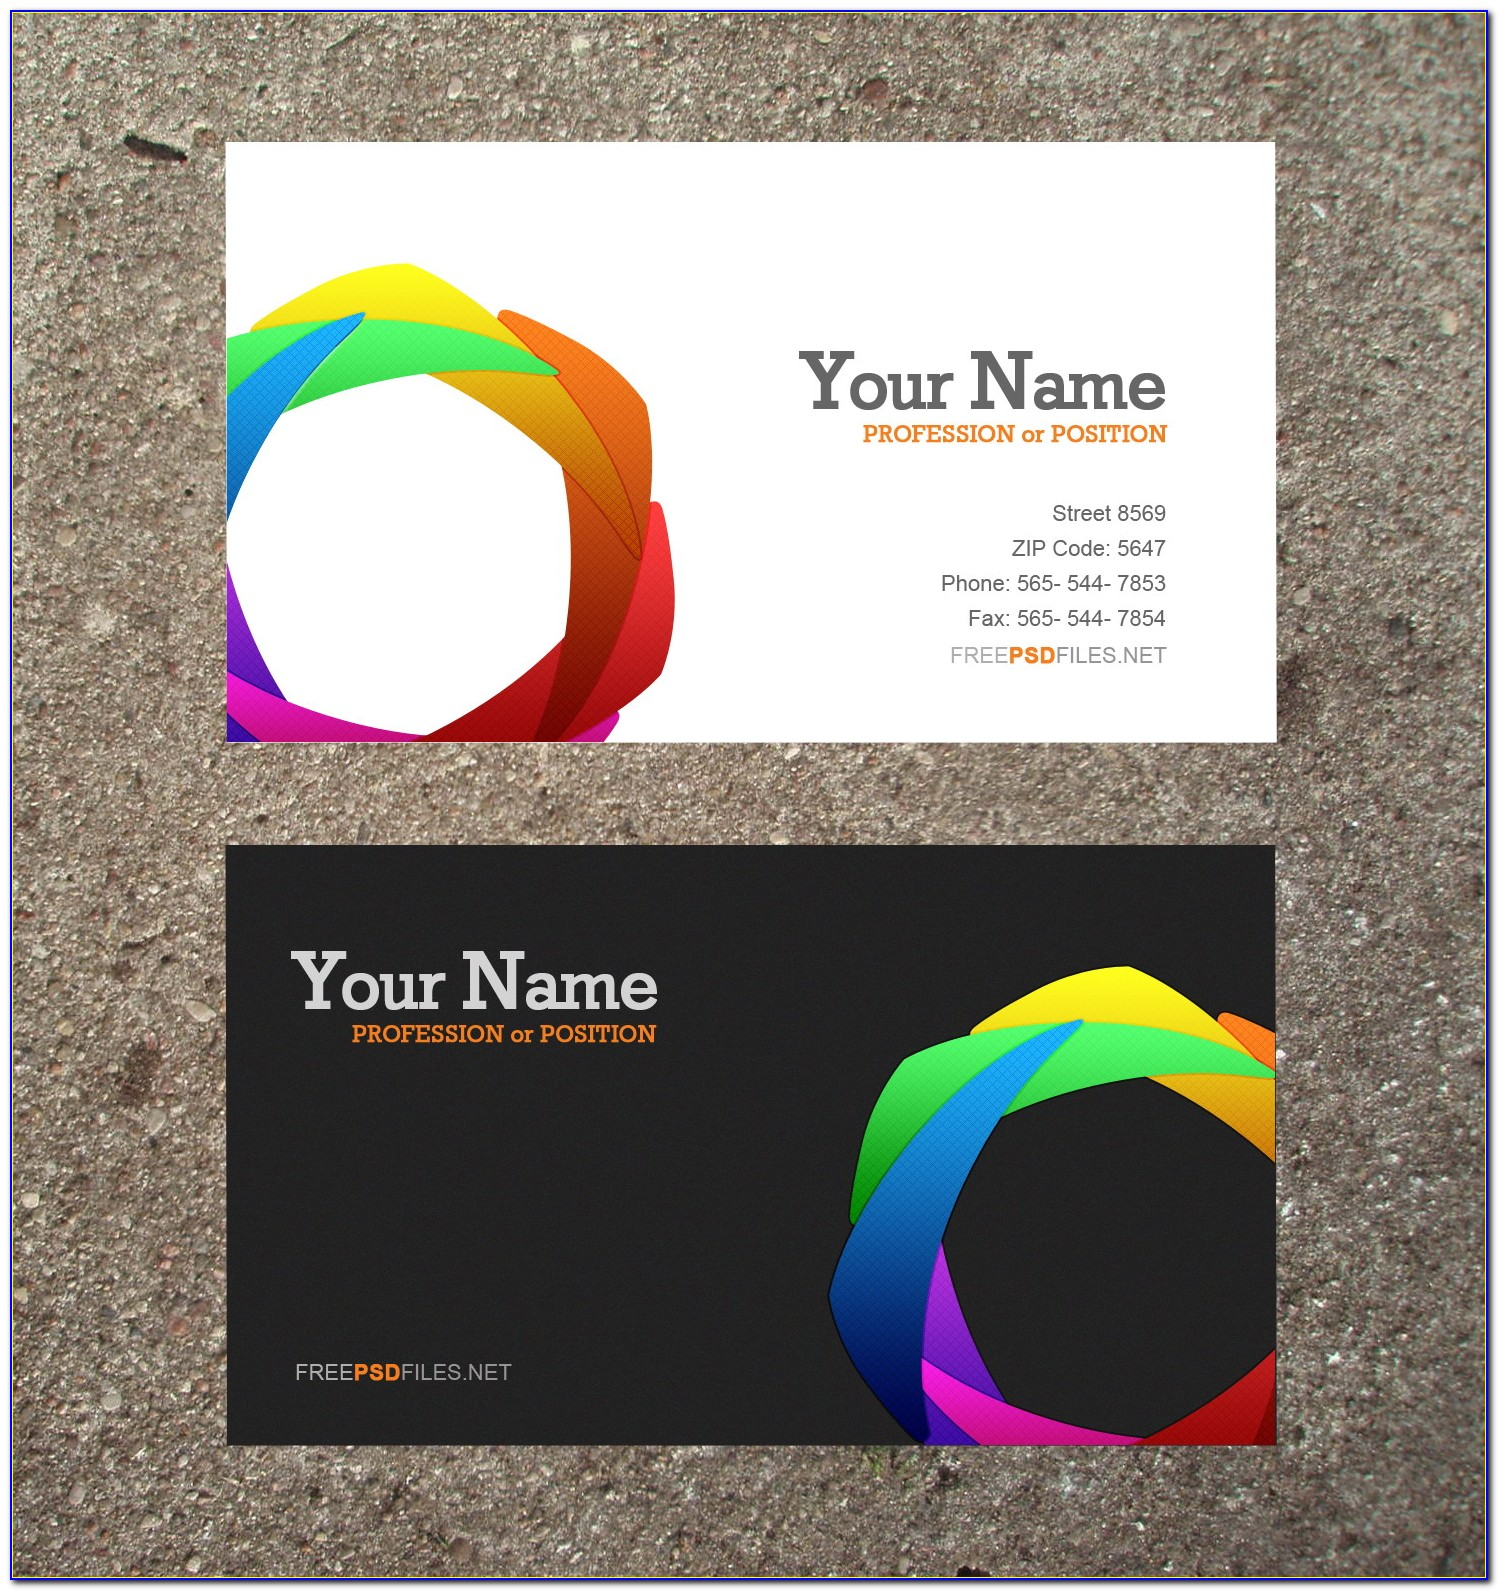 Business Card Design Psd Templates Free Download